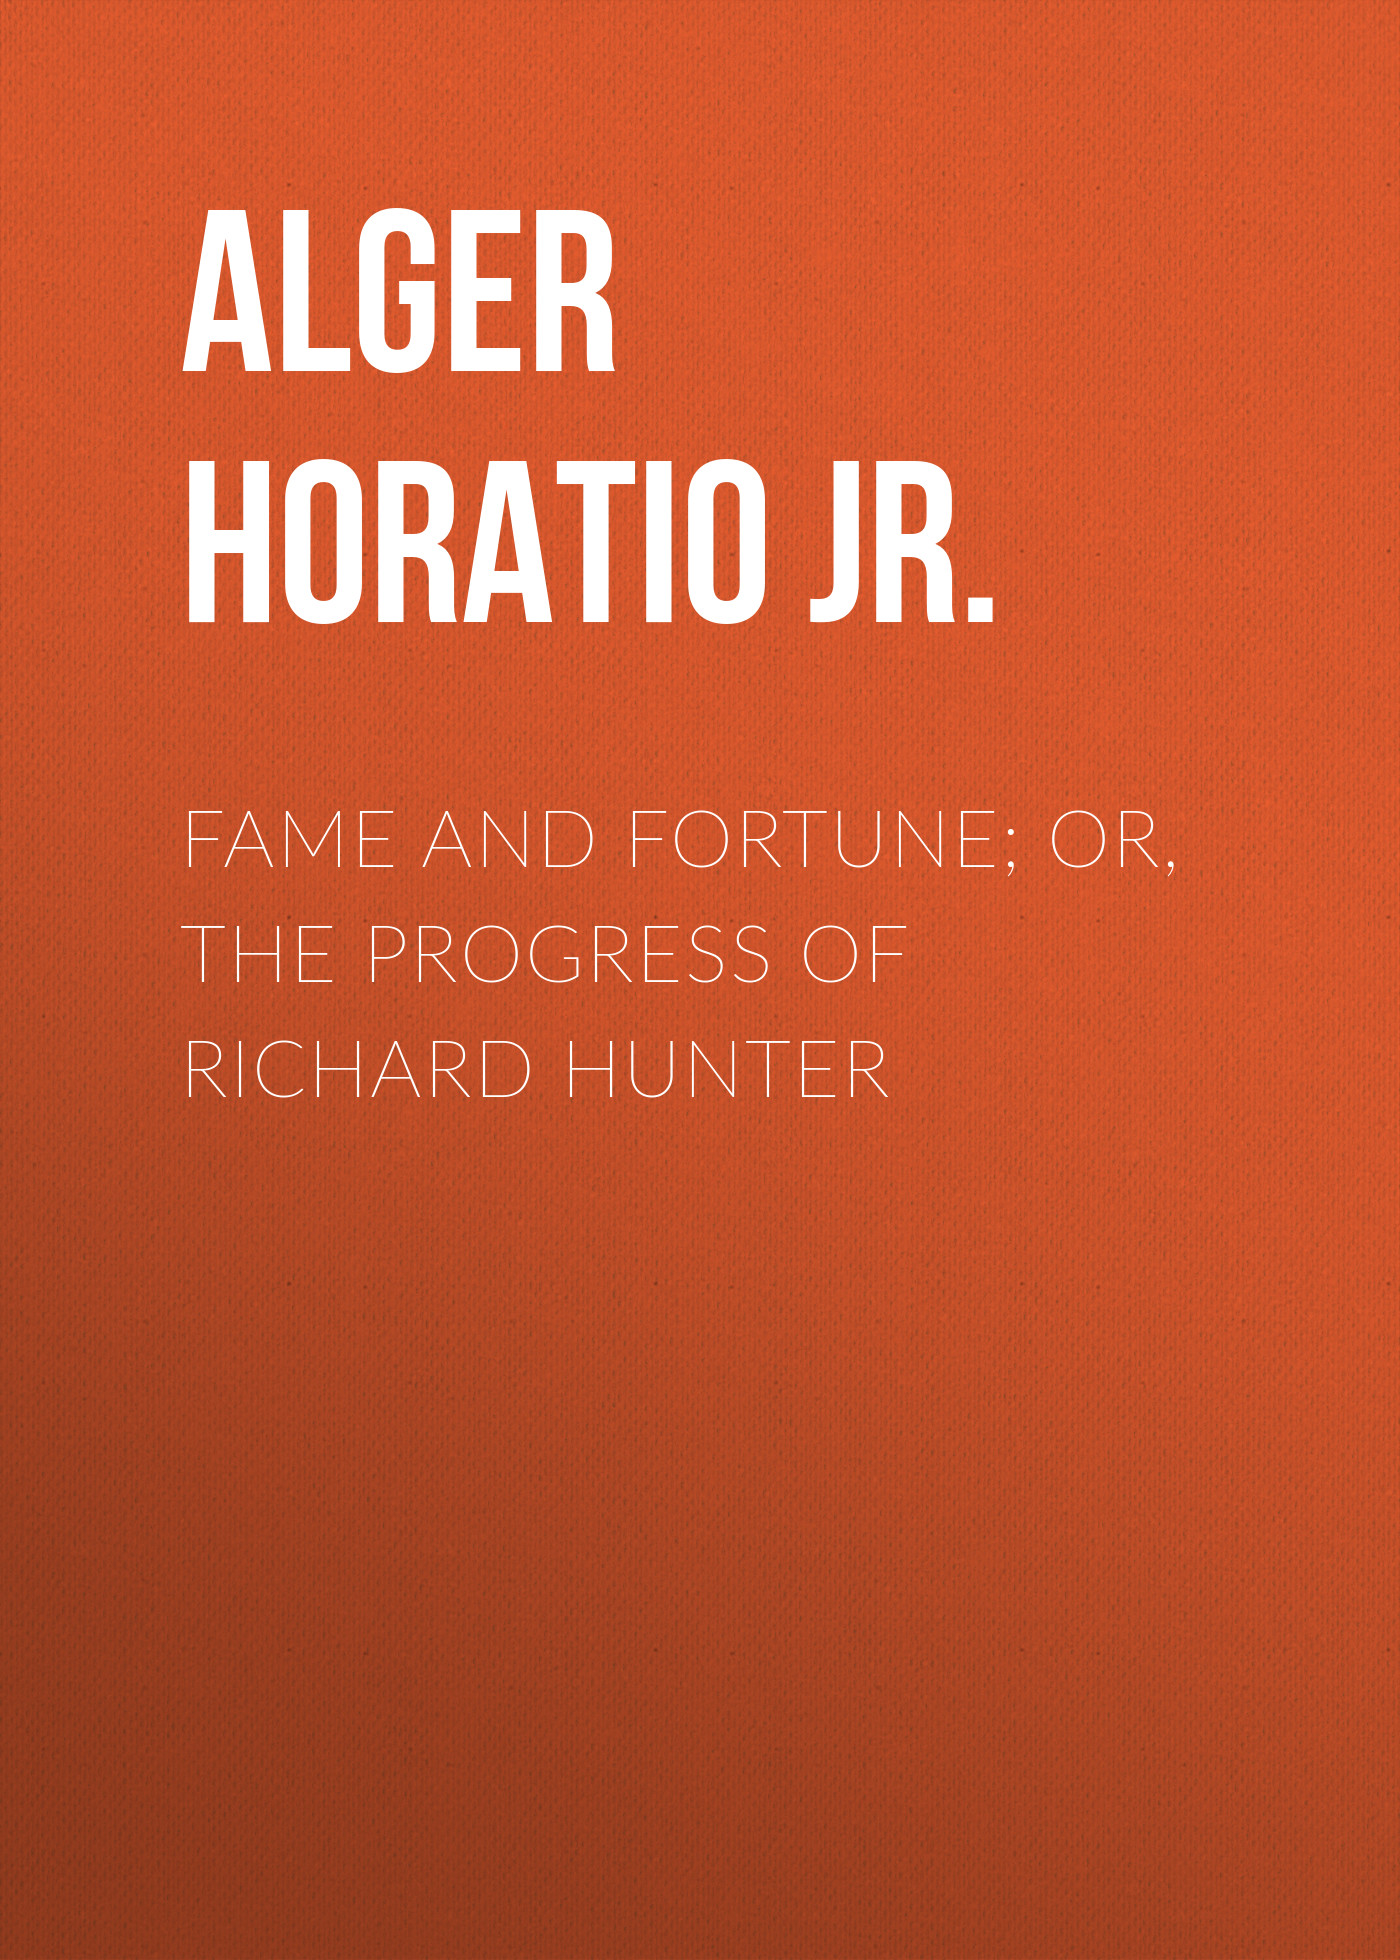 лучшая цена Alger Horatio Jr. Fame and Fortune; or, The Progress of Richard Hunter